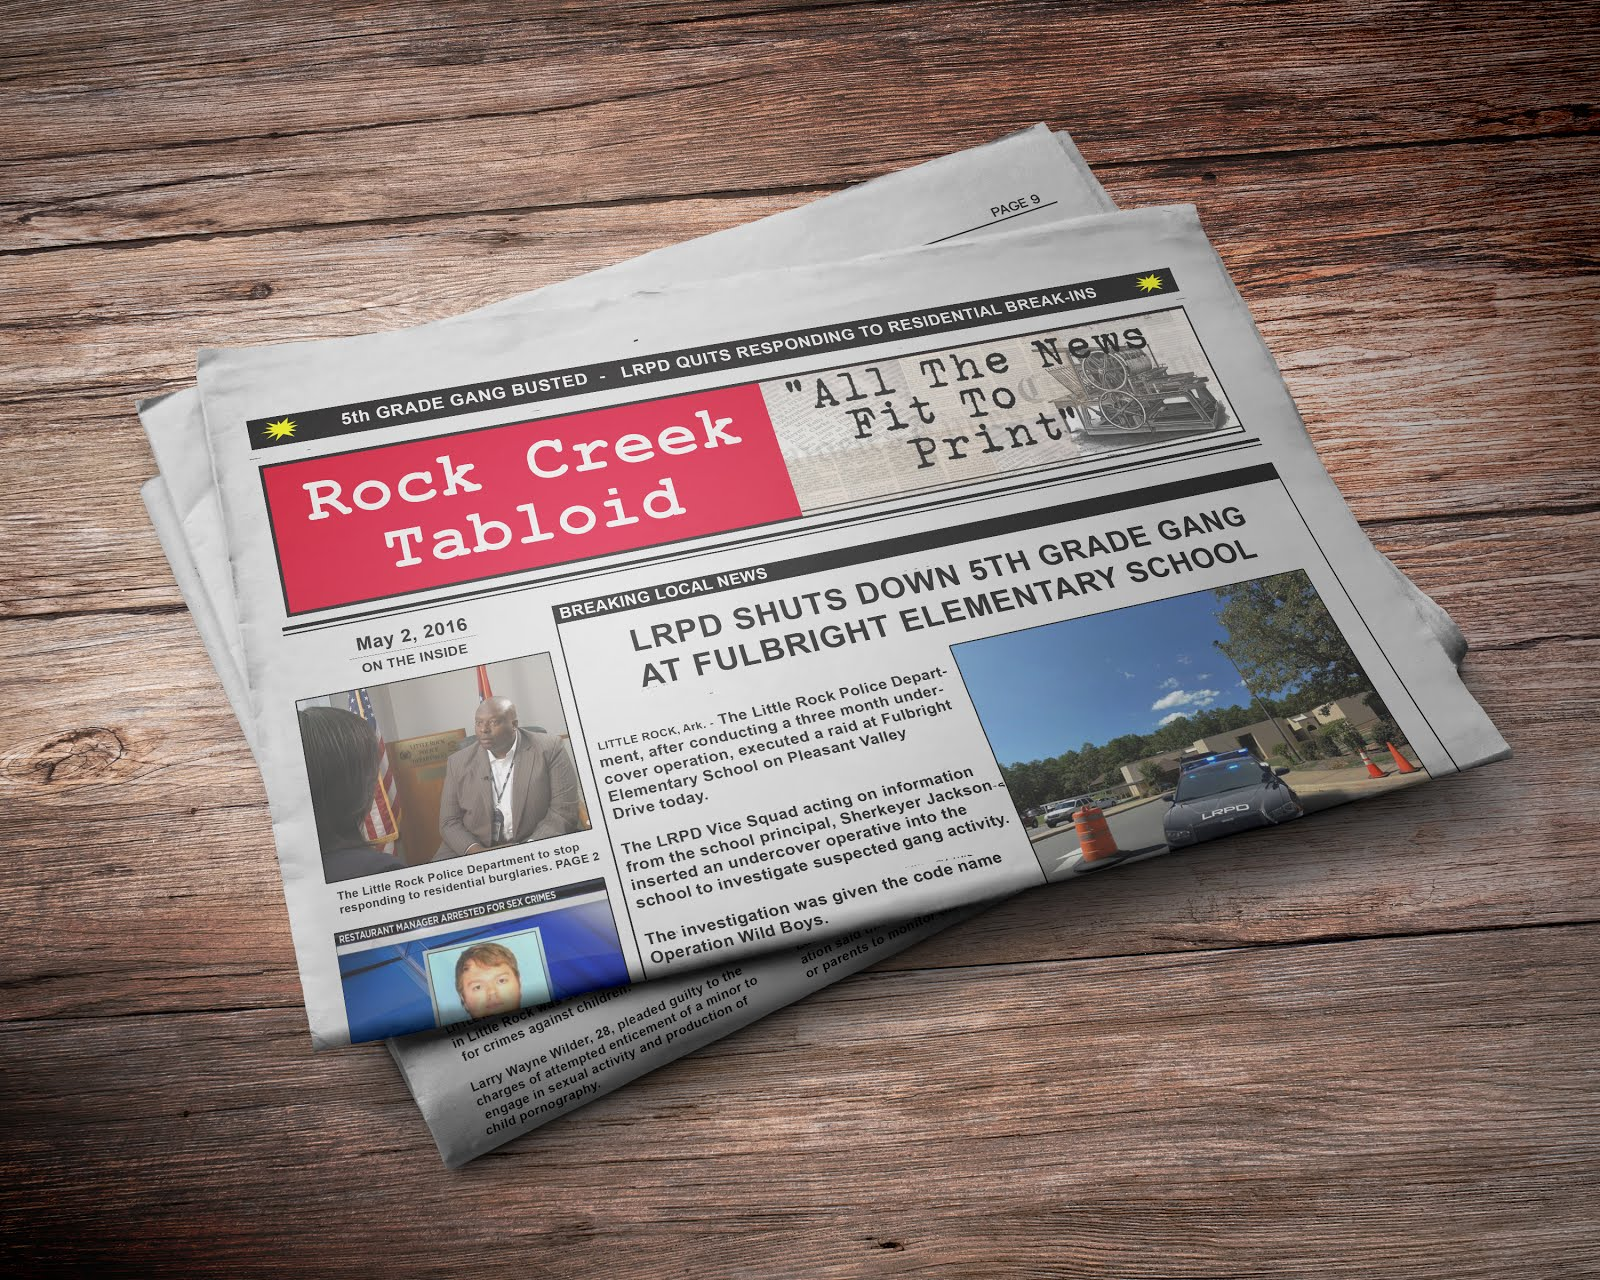 LOOK FOR ROCK CREEK TABLOID IN A STORE NEAR YOU!